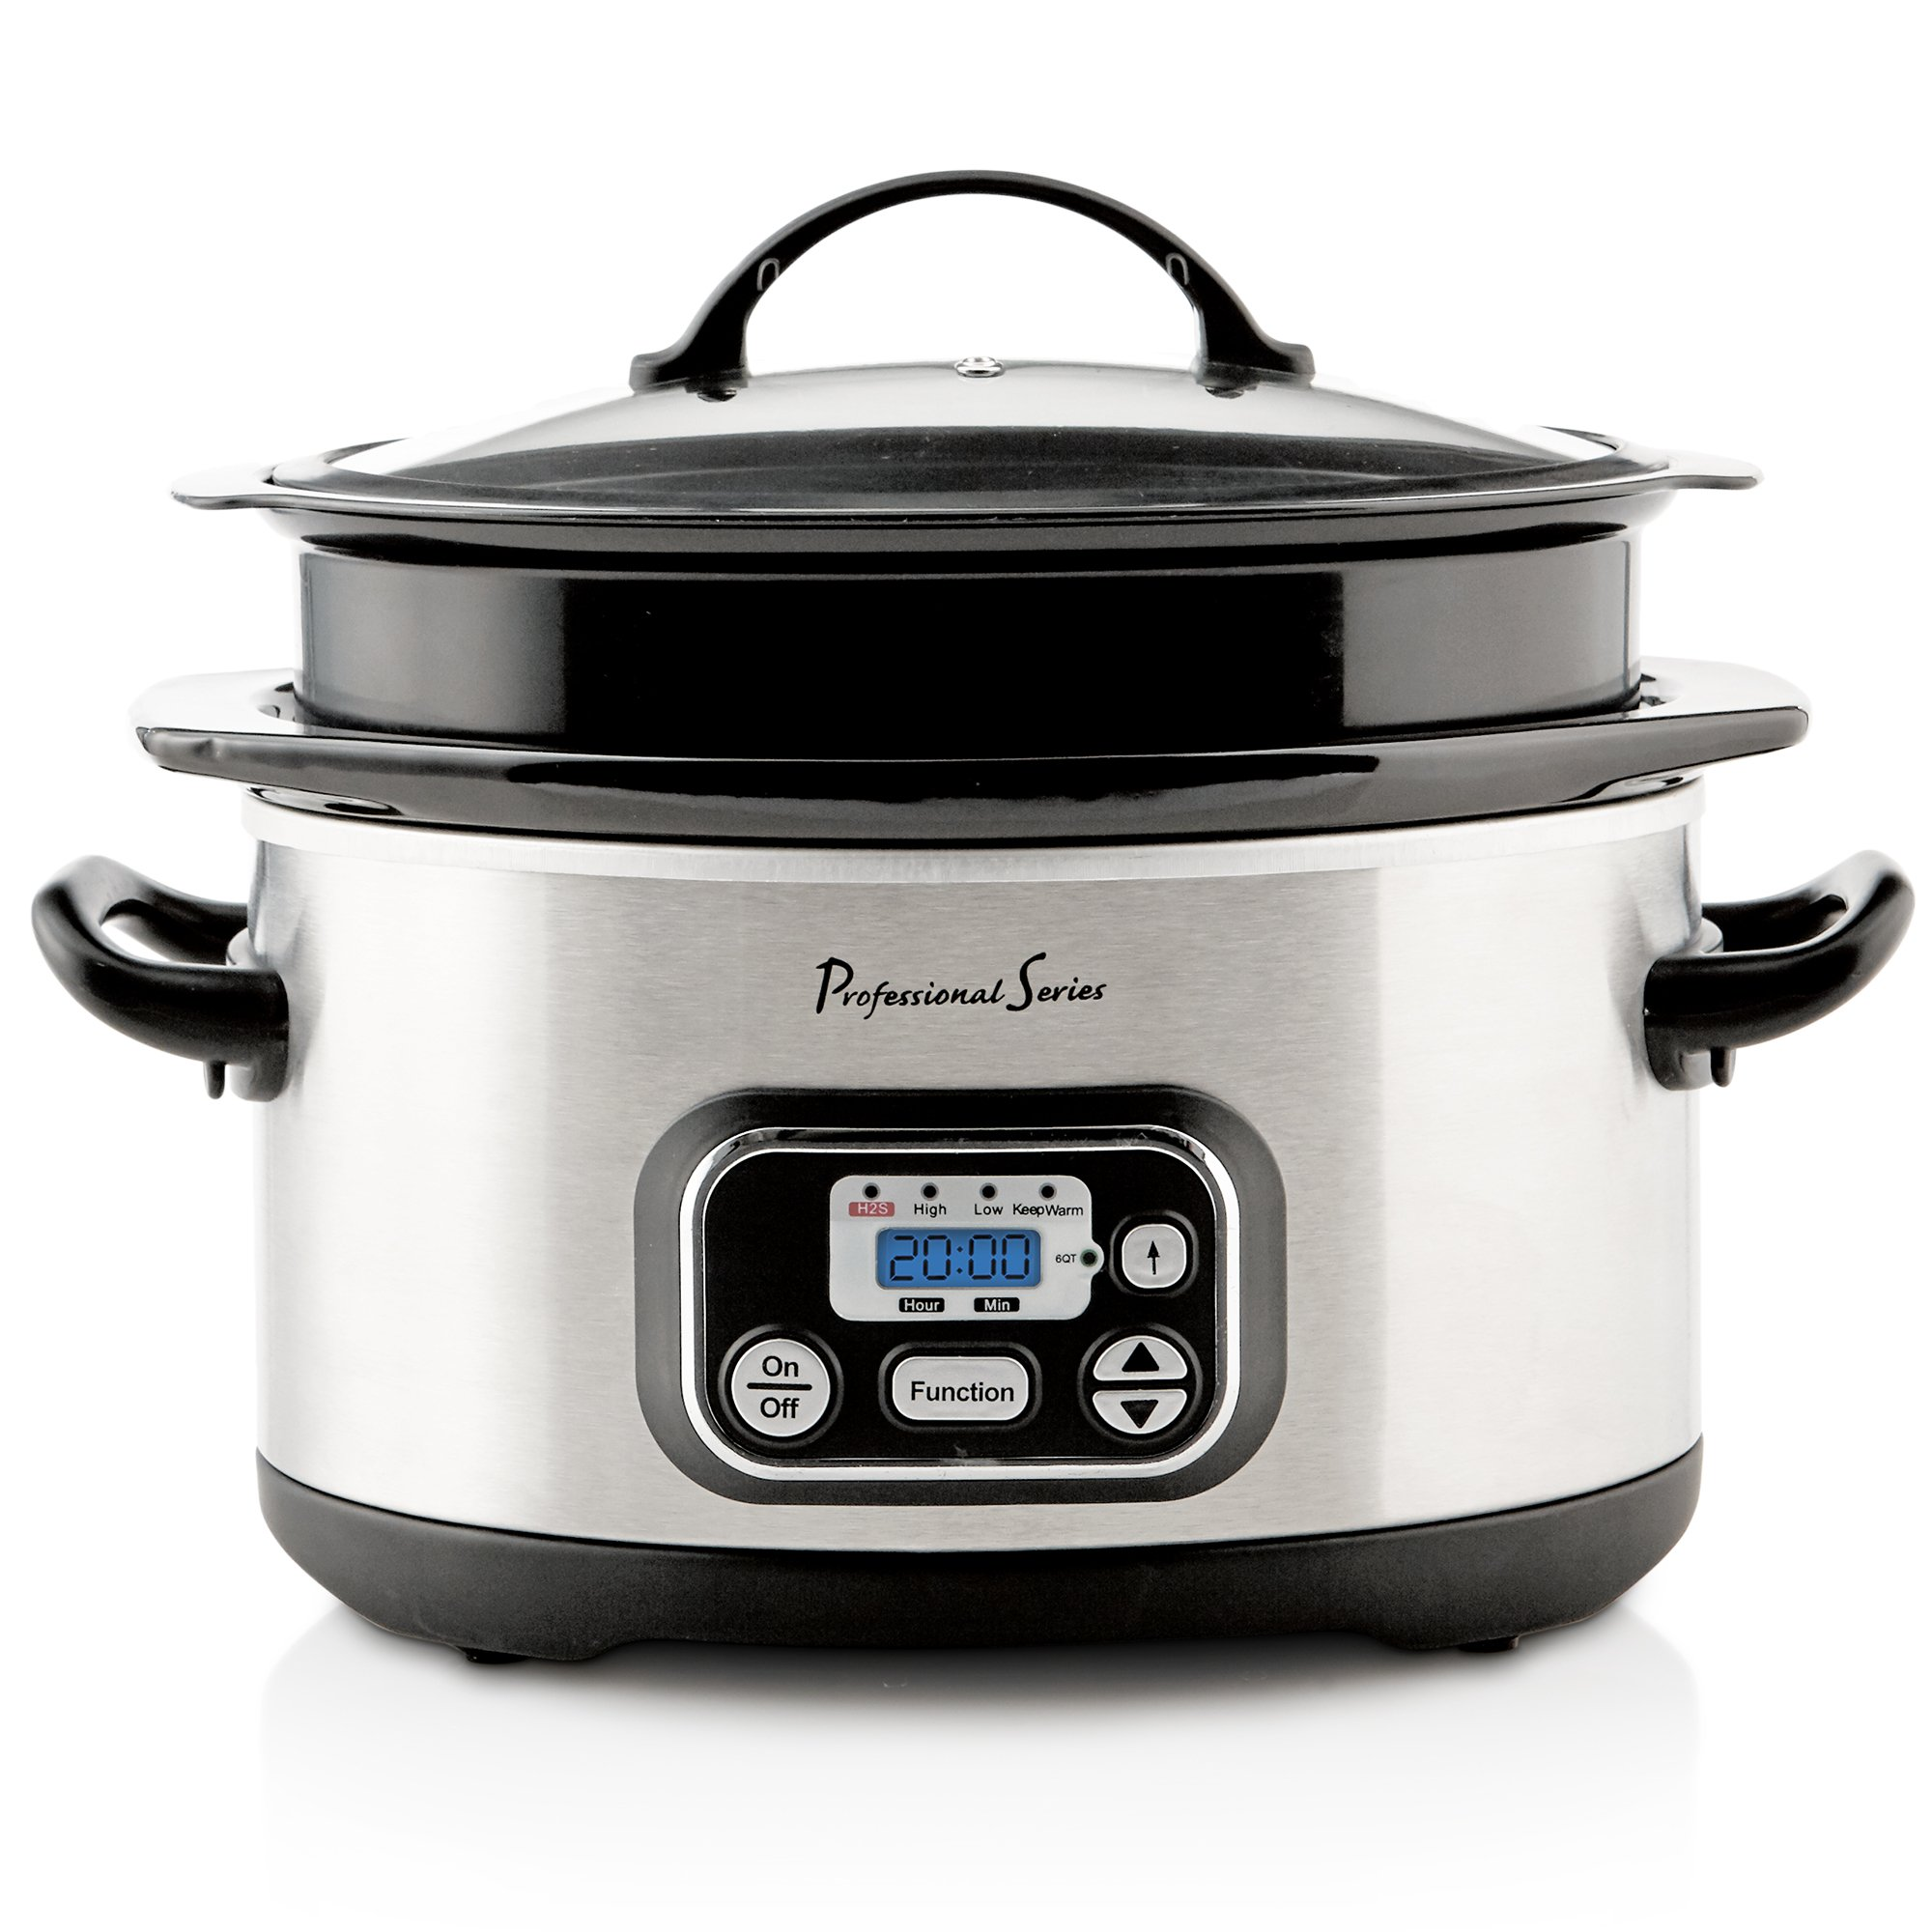 Continental Electric PS75239 Slow Cooker, 4-6 Quart Expandable, Stainless Steel